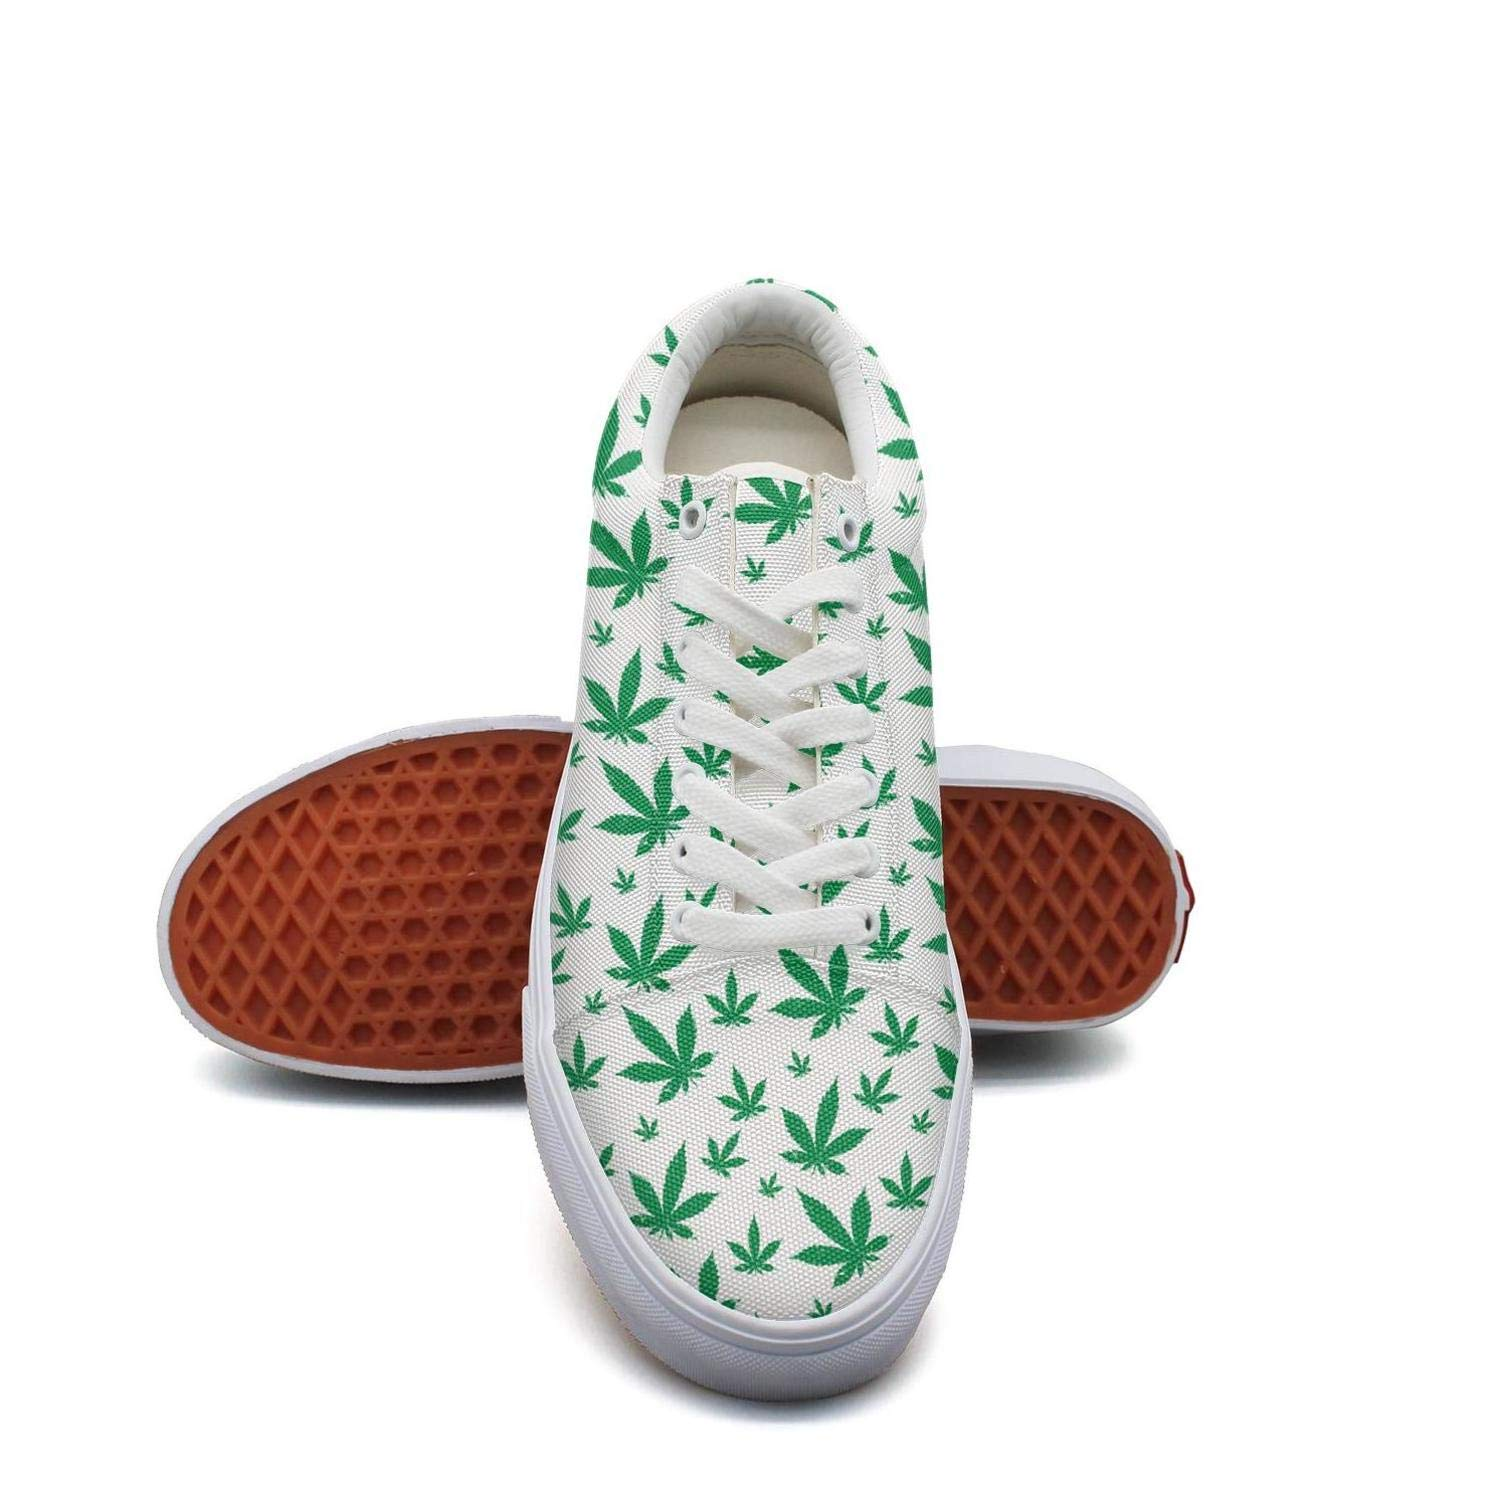 Opr7 Green Outdoor Cannabis Women Lace-Up Skate Shoes Canvas Upper Loafer Fashion